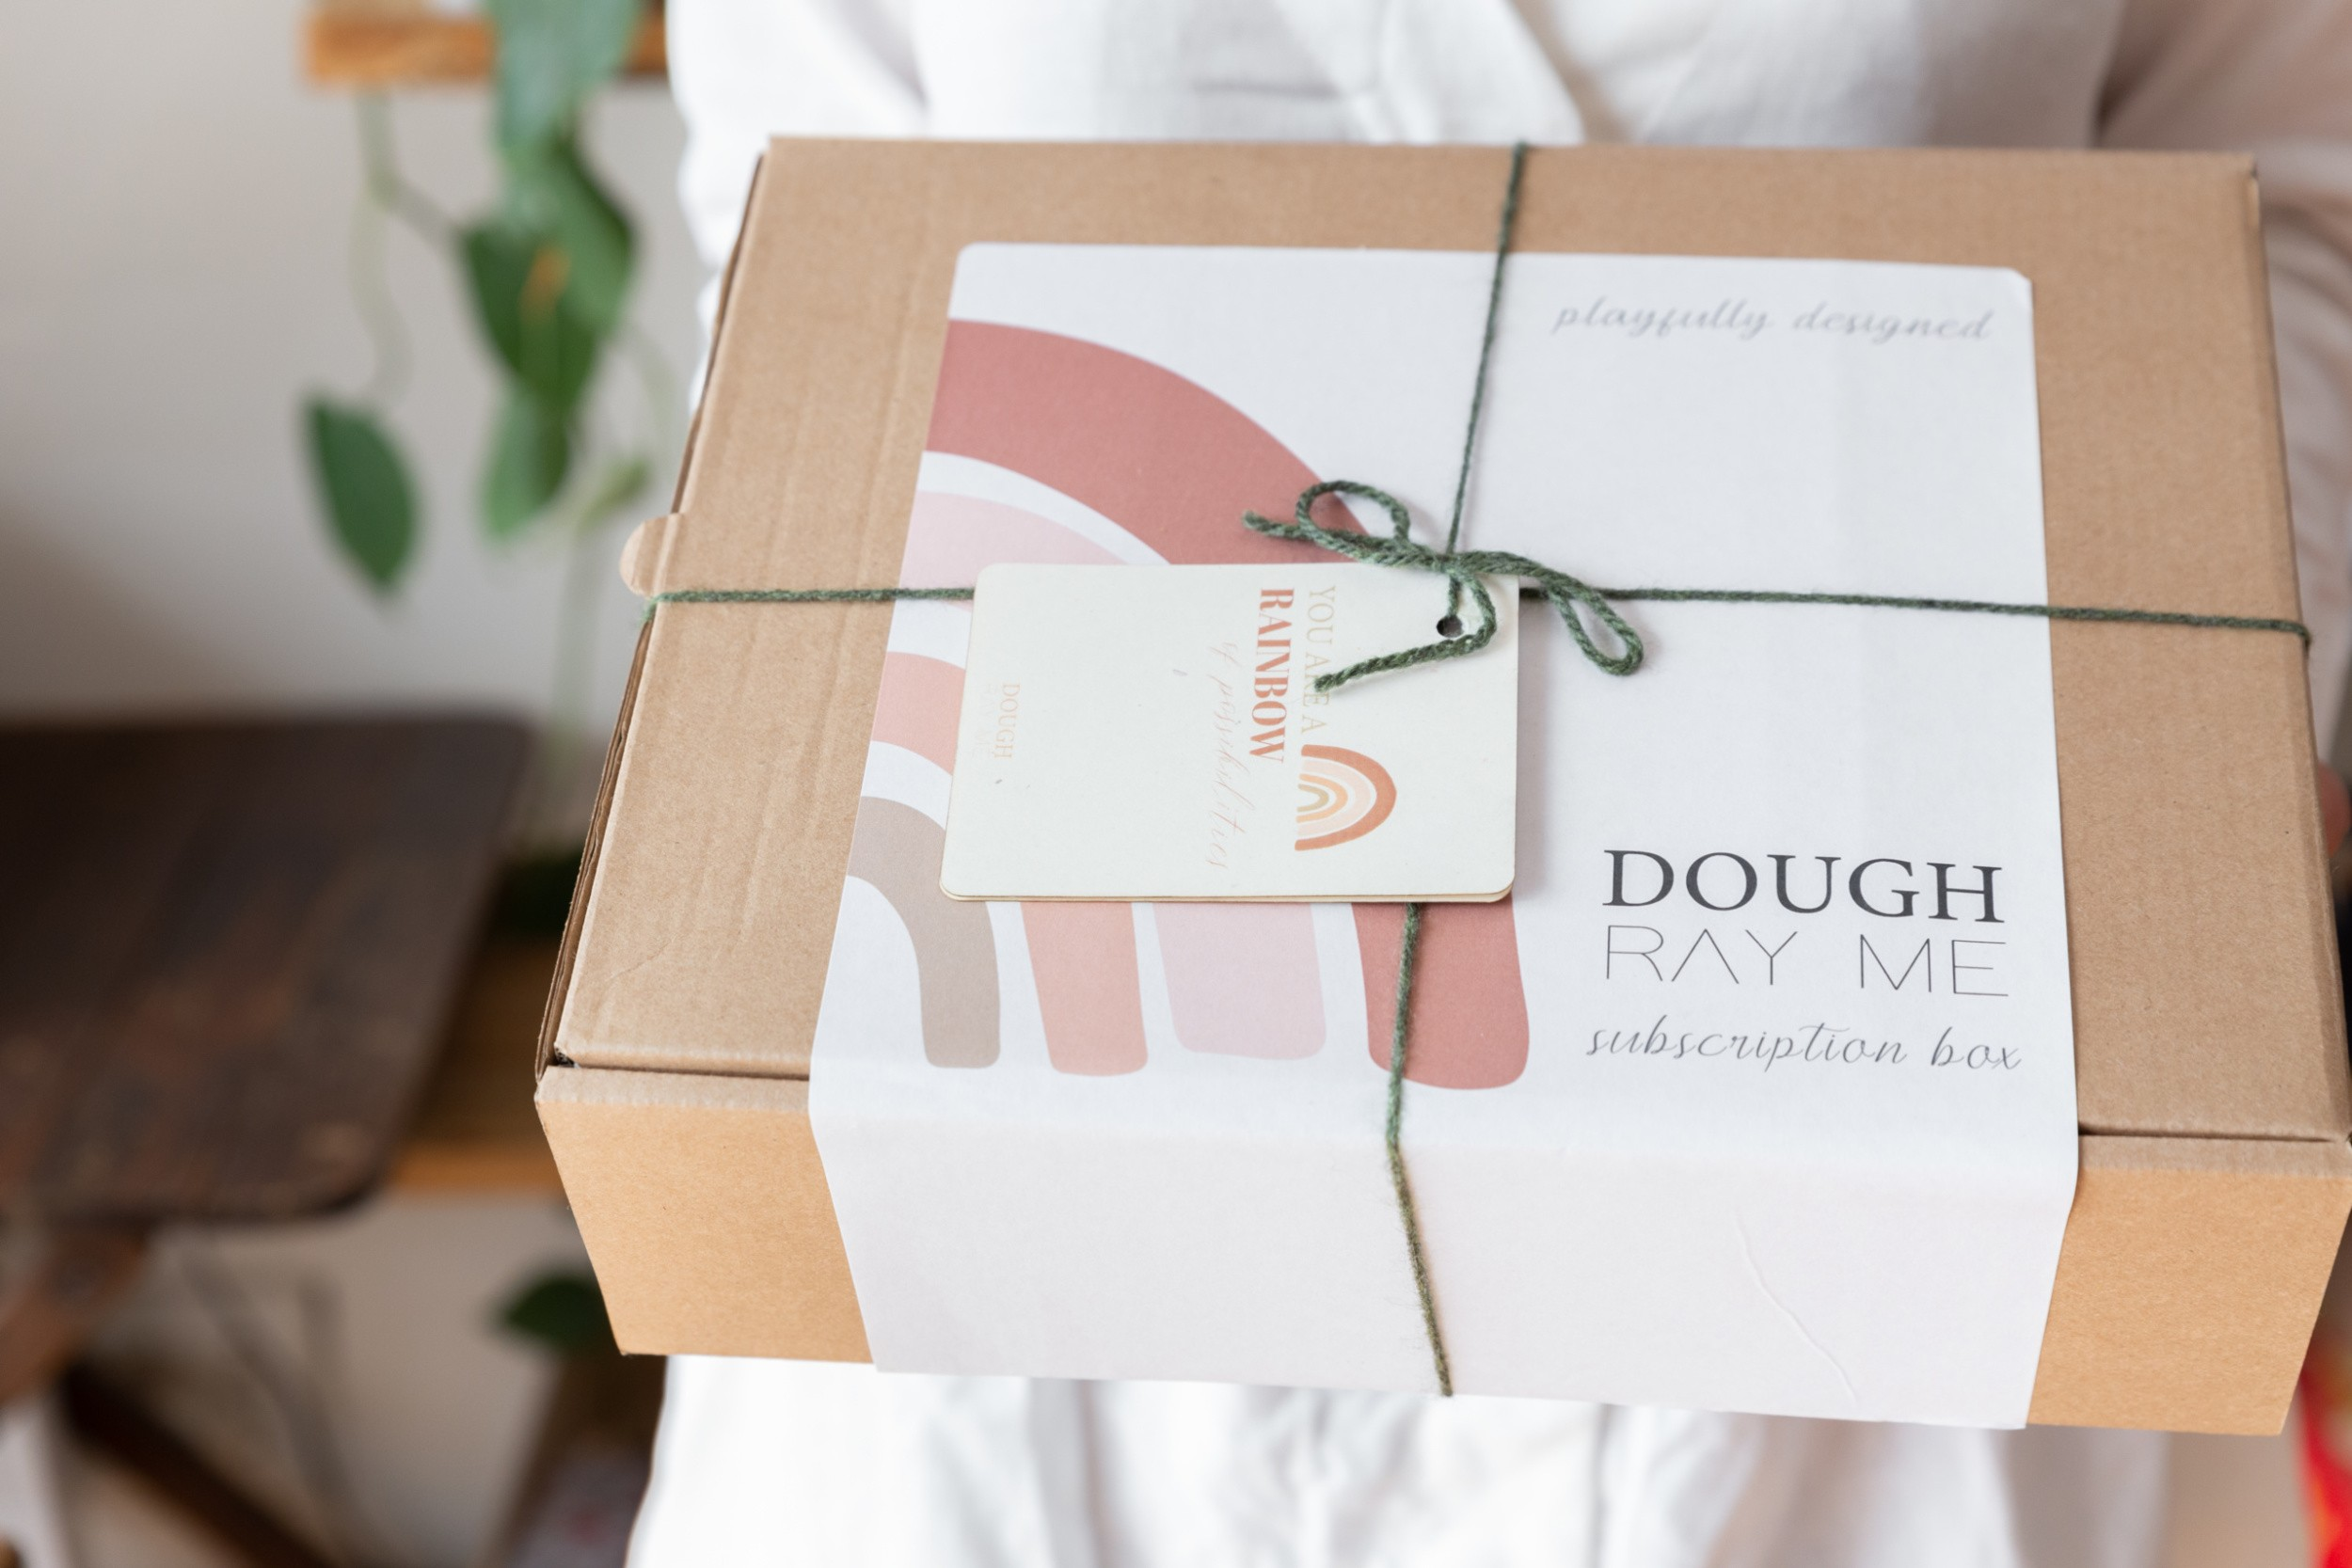 Dogh Ray Me Subscription Box